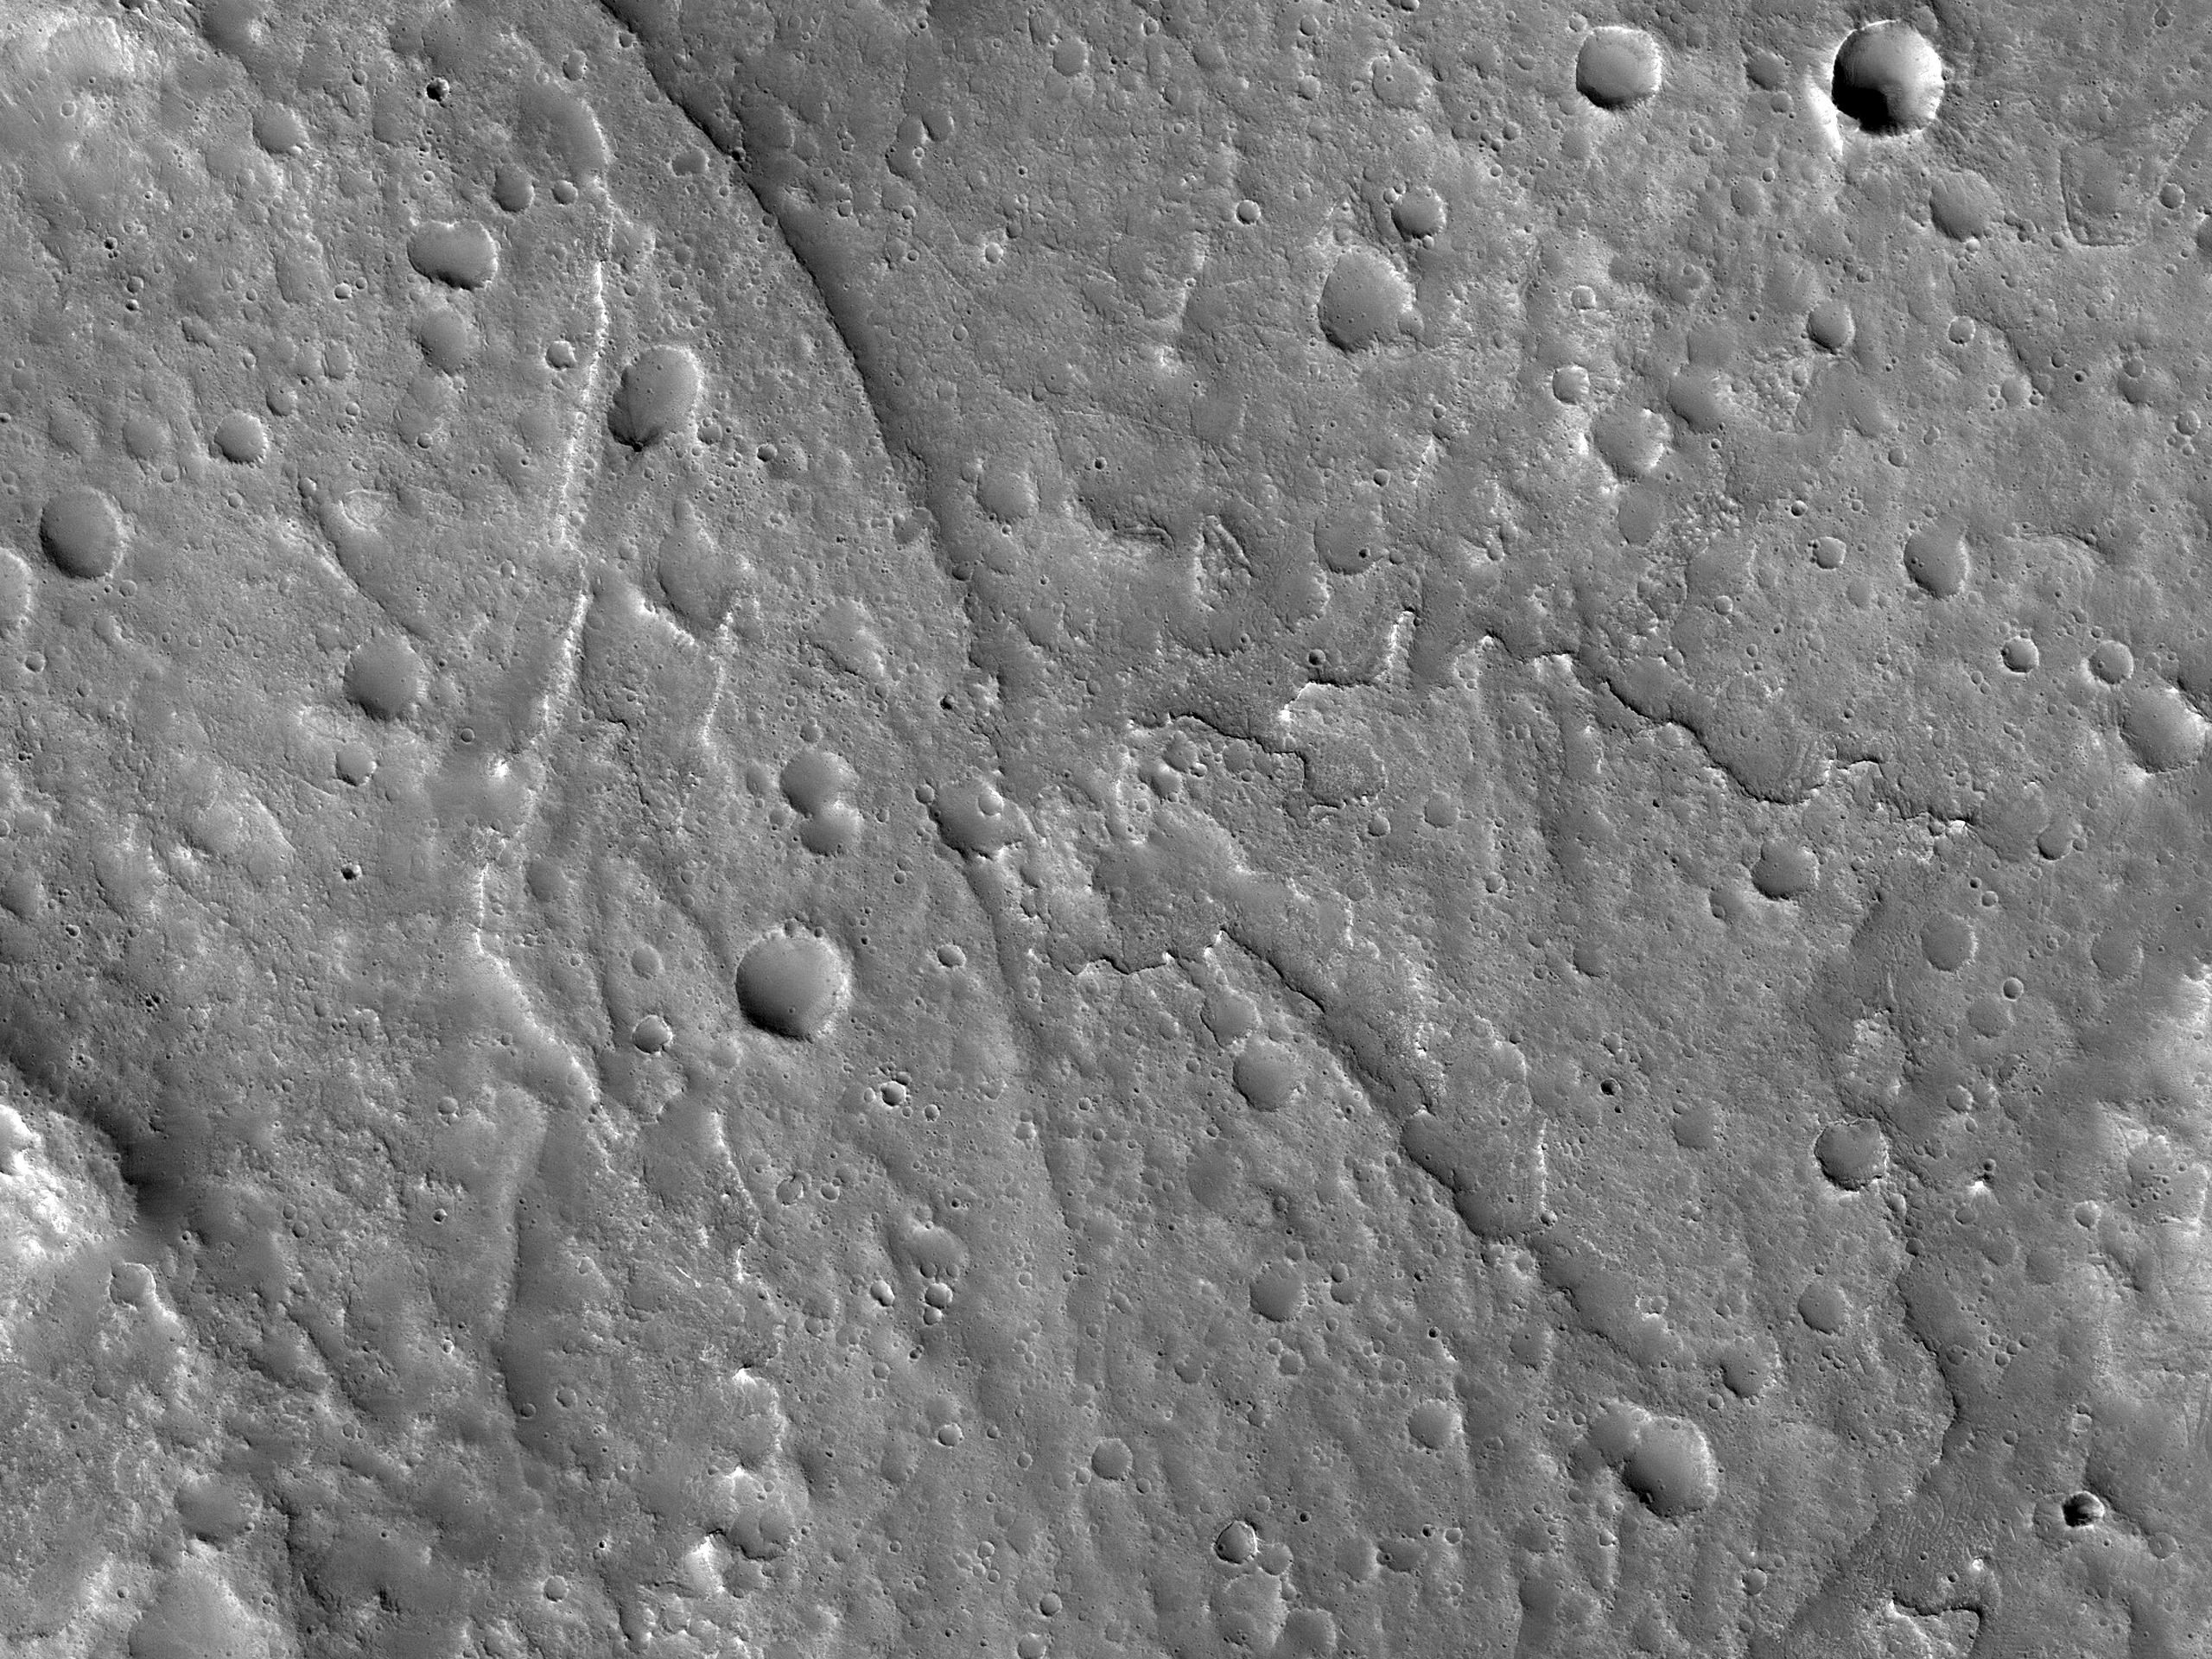 An Inverted Channel West of Idaeus Fossae